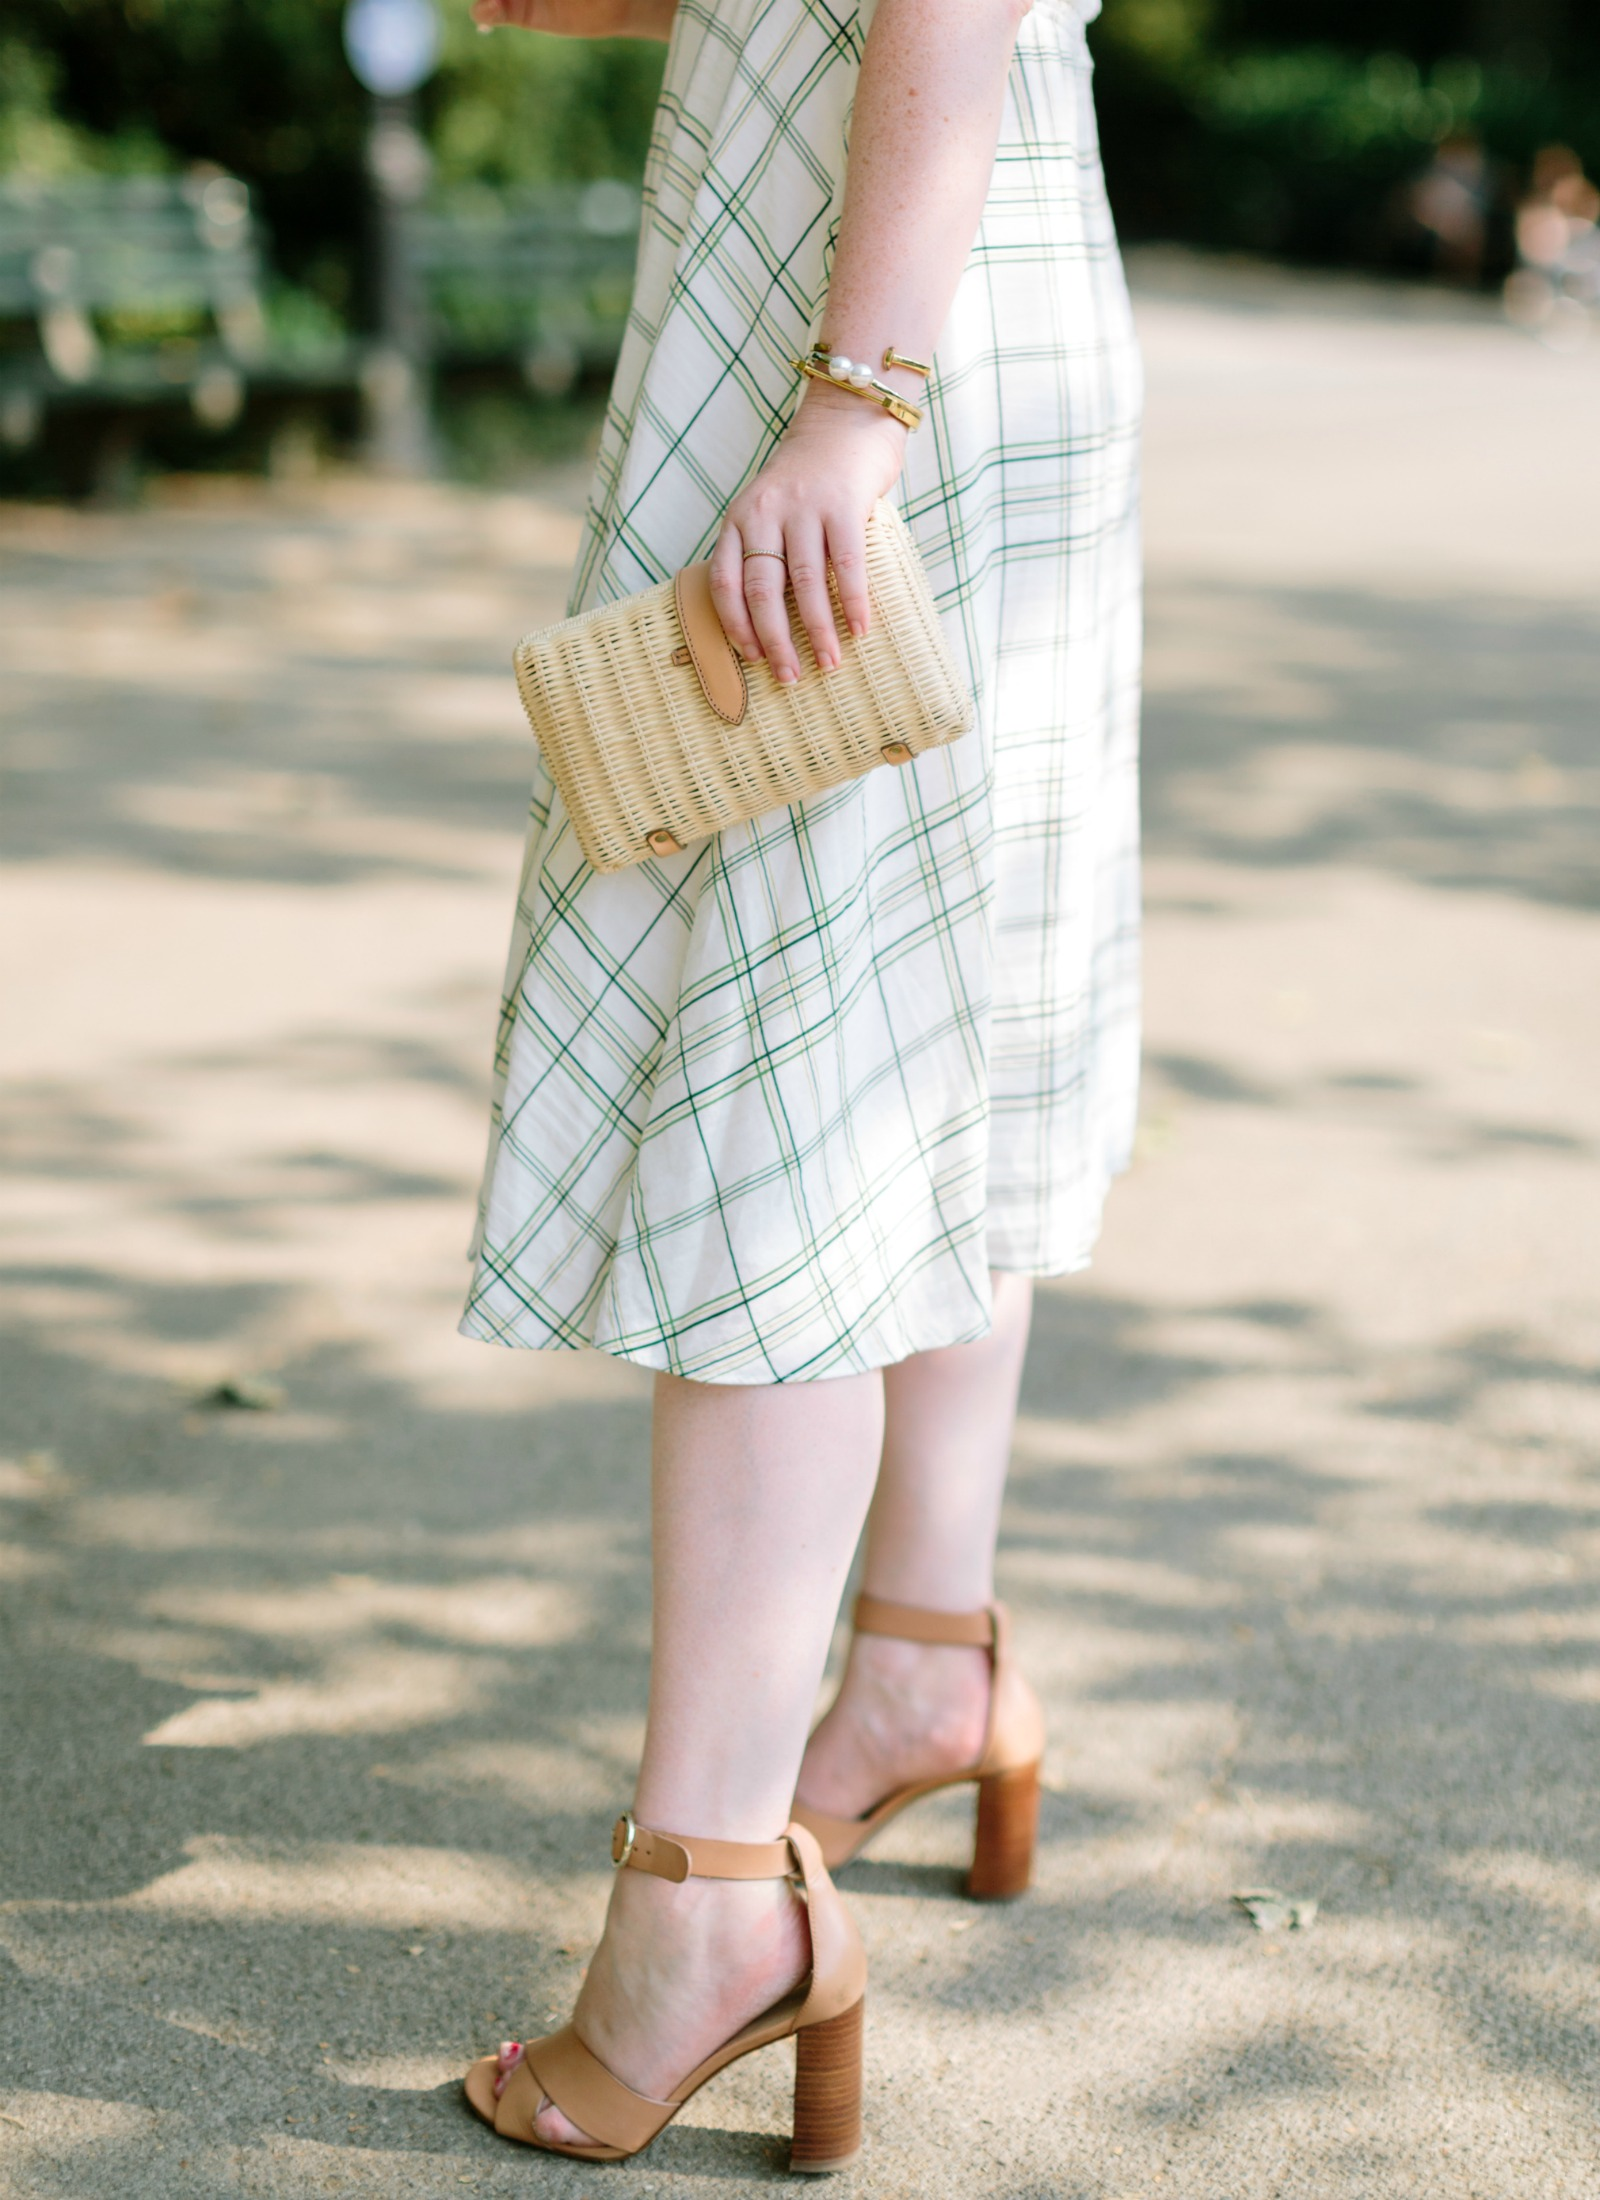 J.Crew Raffia Clutch I Things Ill Be Wearing This Summer